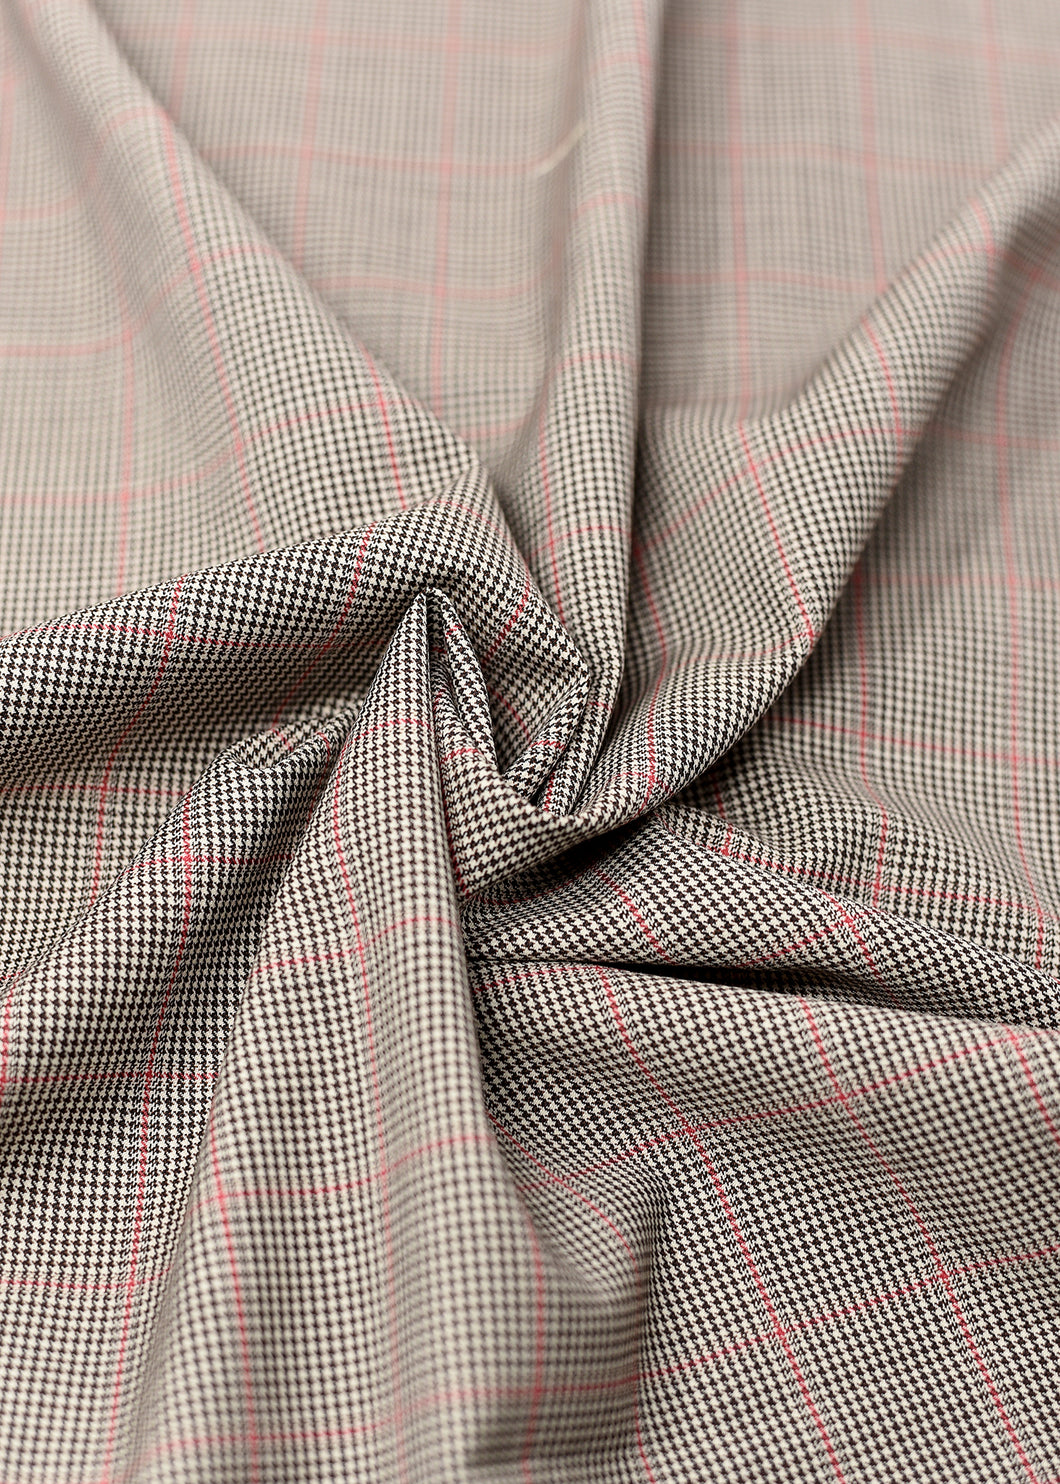 Brown Black/Red Checked Cashmere 220 (N6,000 Per Yard)